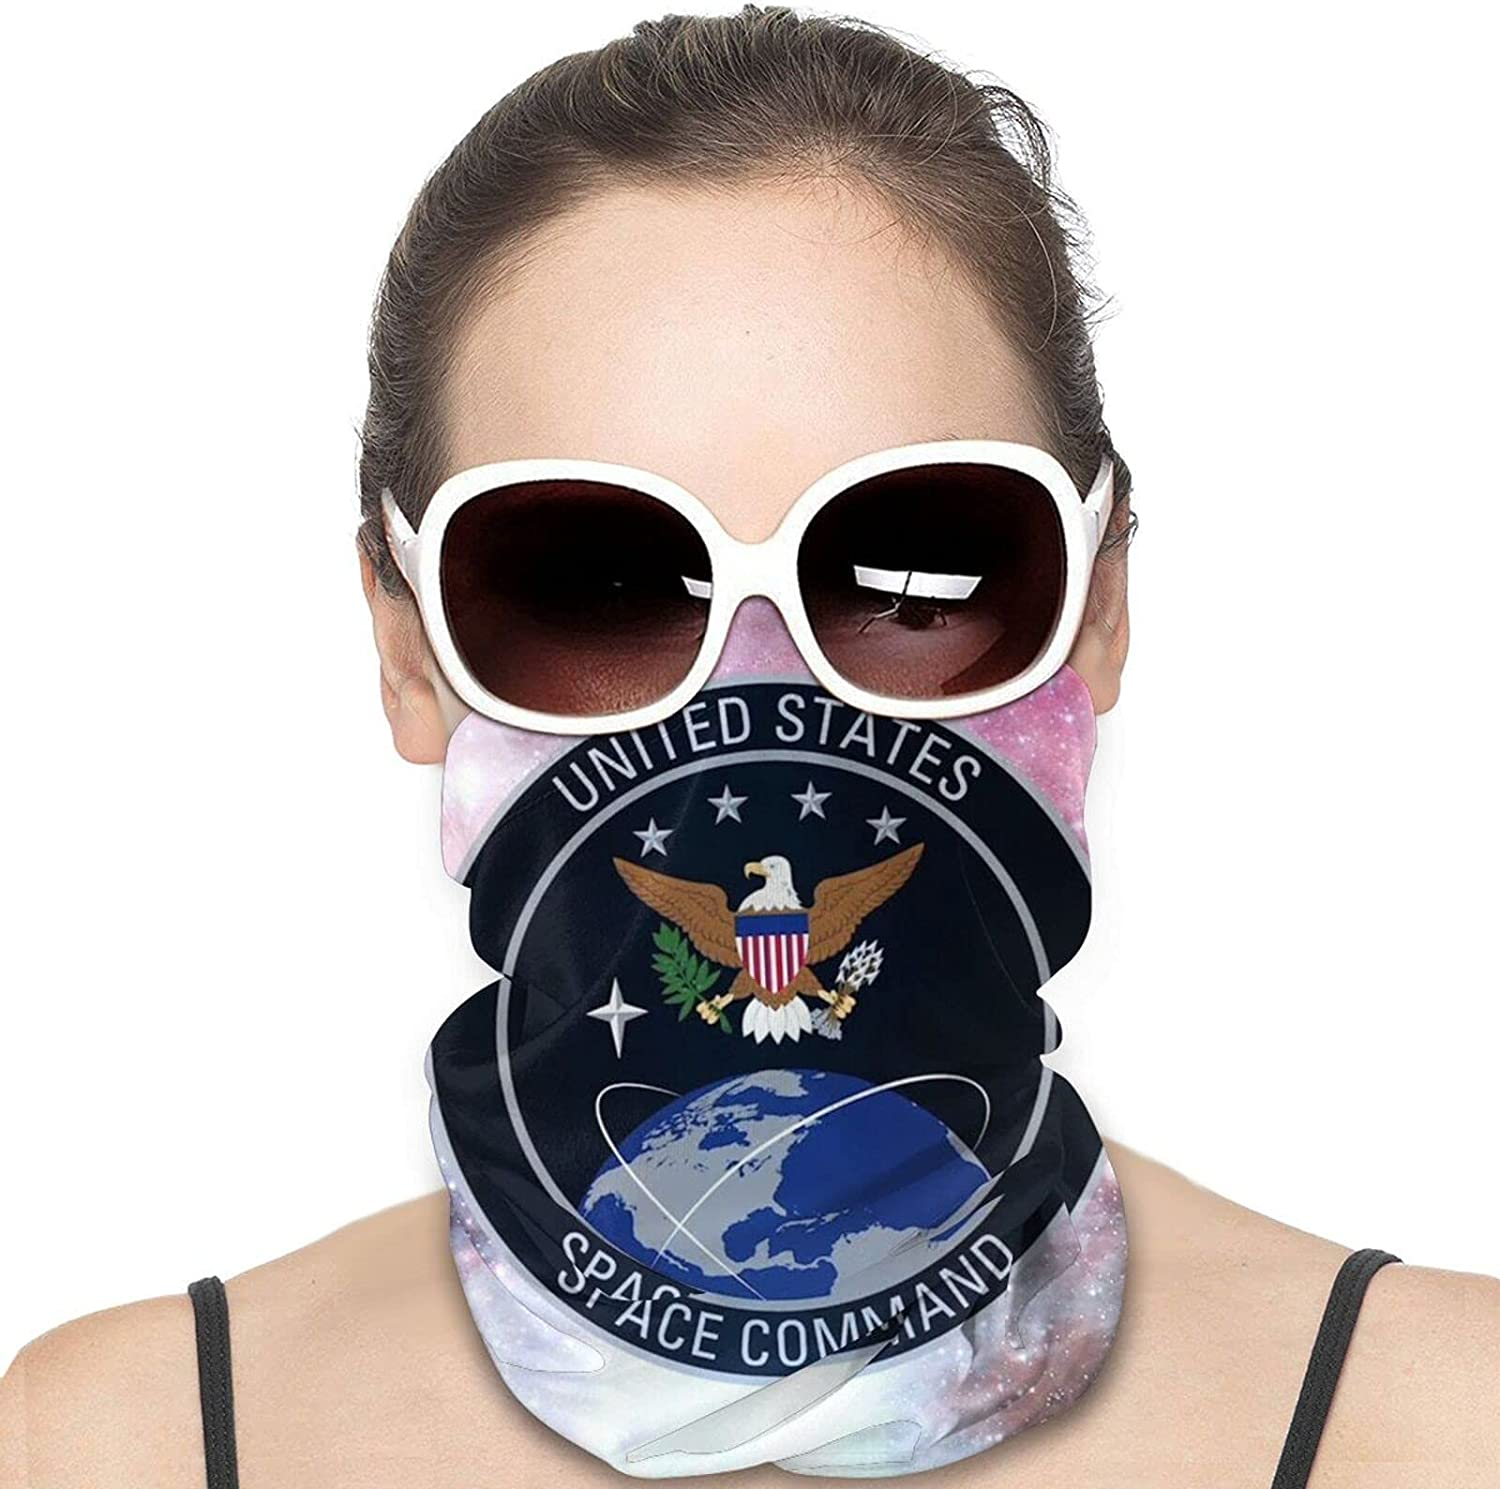 United States Space Command Usspacecom Emblem Round Neck Gaiter Bandnas Face Cover Uv Protection Prevent bask in Ice Scarf Headbands Perfect for Motorcycle Cycling Running Festival Raves Outdoors